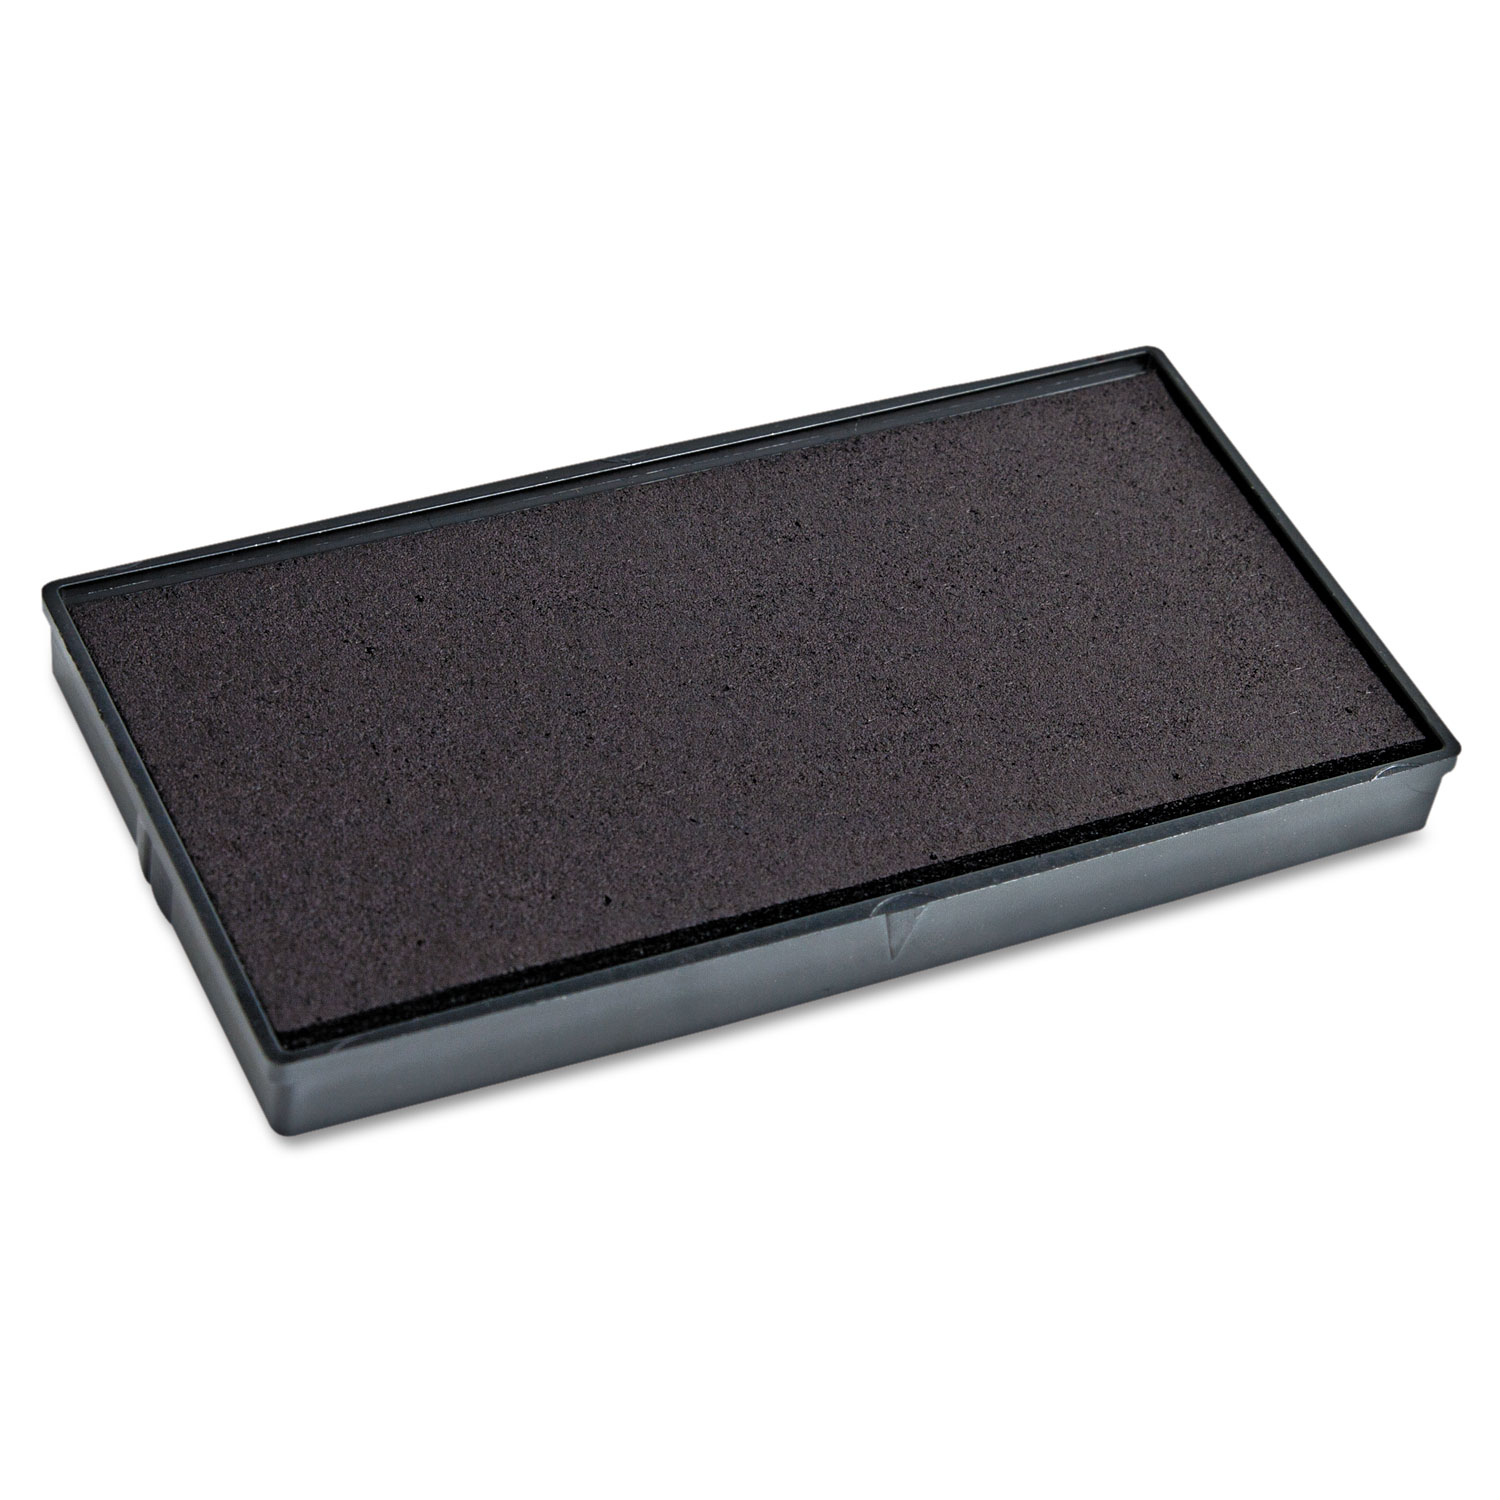 Replacement Ink Pad for 2000PLUS 1SI50P, Black COS065478